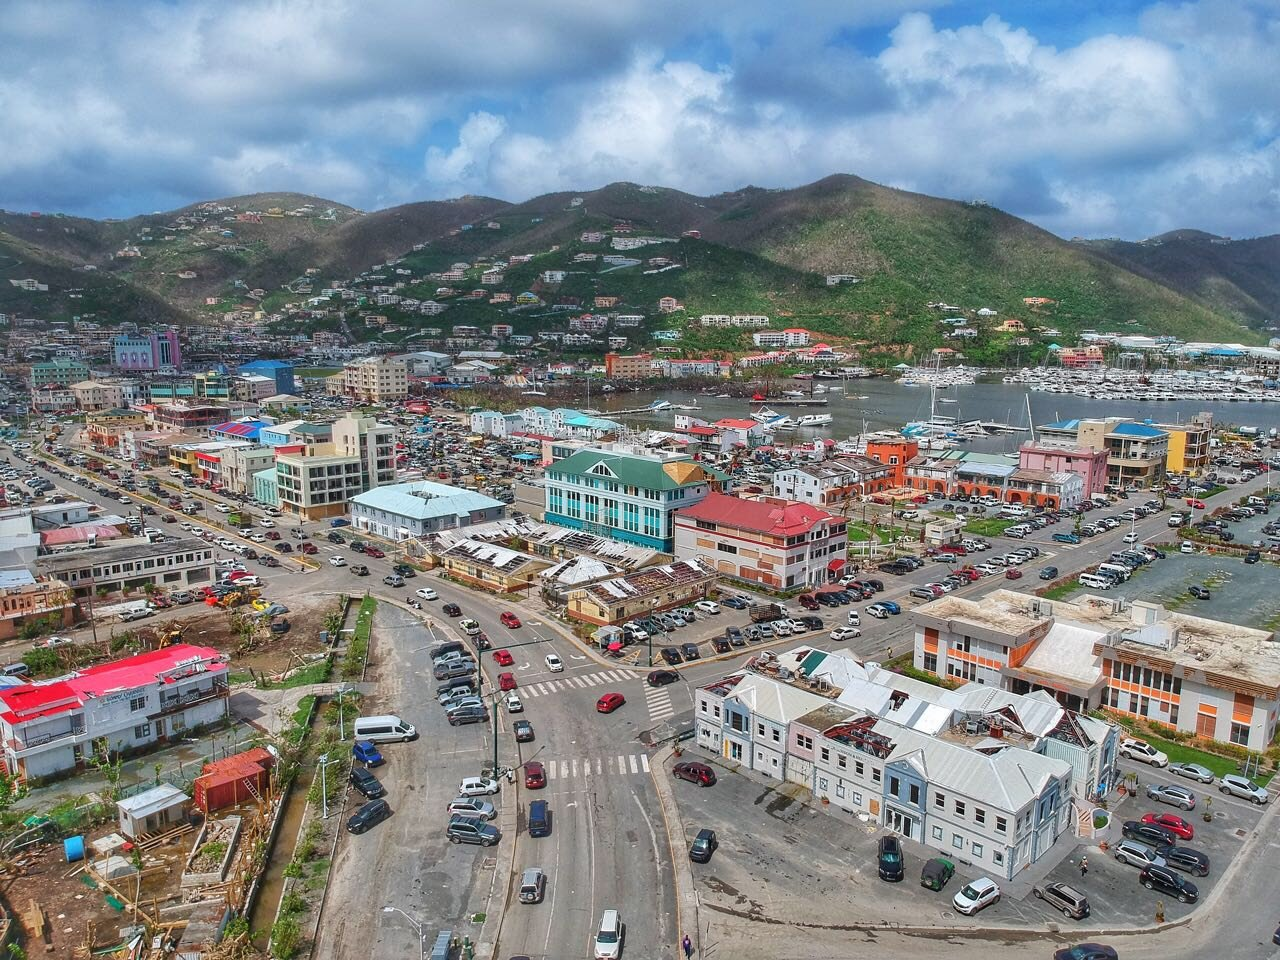 Aerial Shot of Road Town in Tortola  photo by Alton Bertie